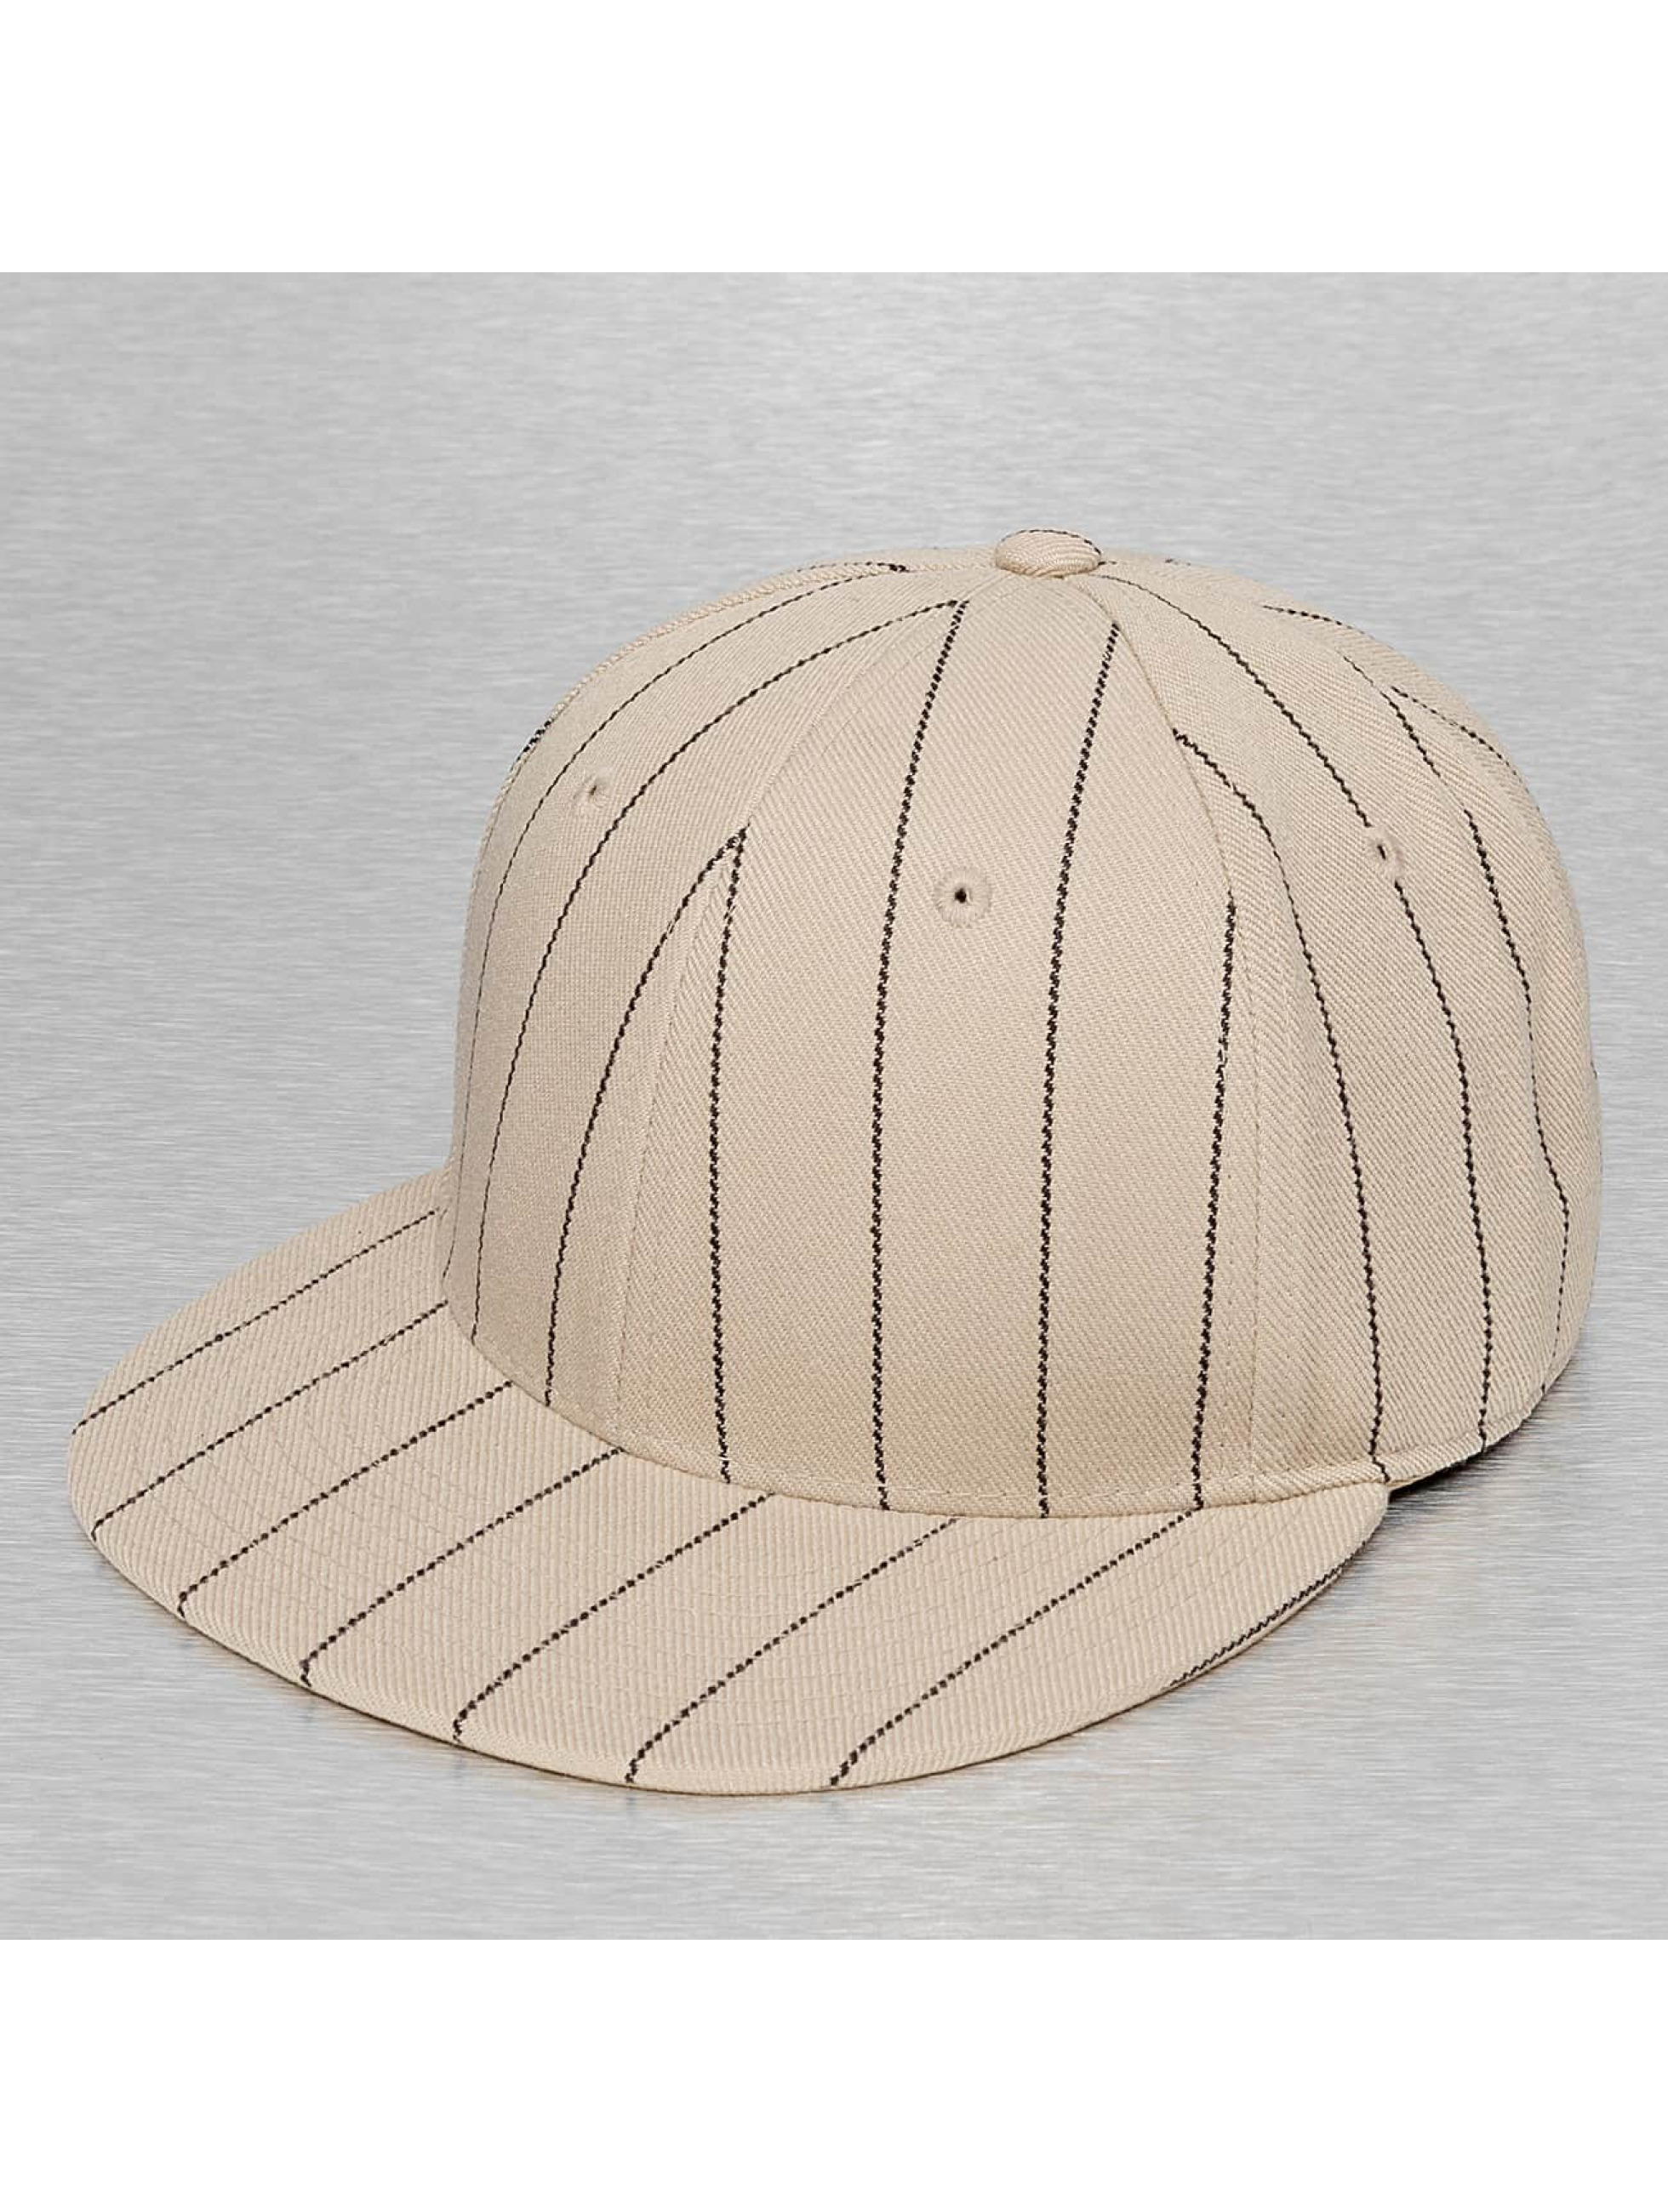 Cap Crony Бейсболка Pin Striped хаки